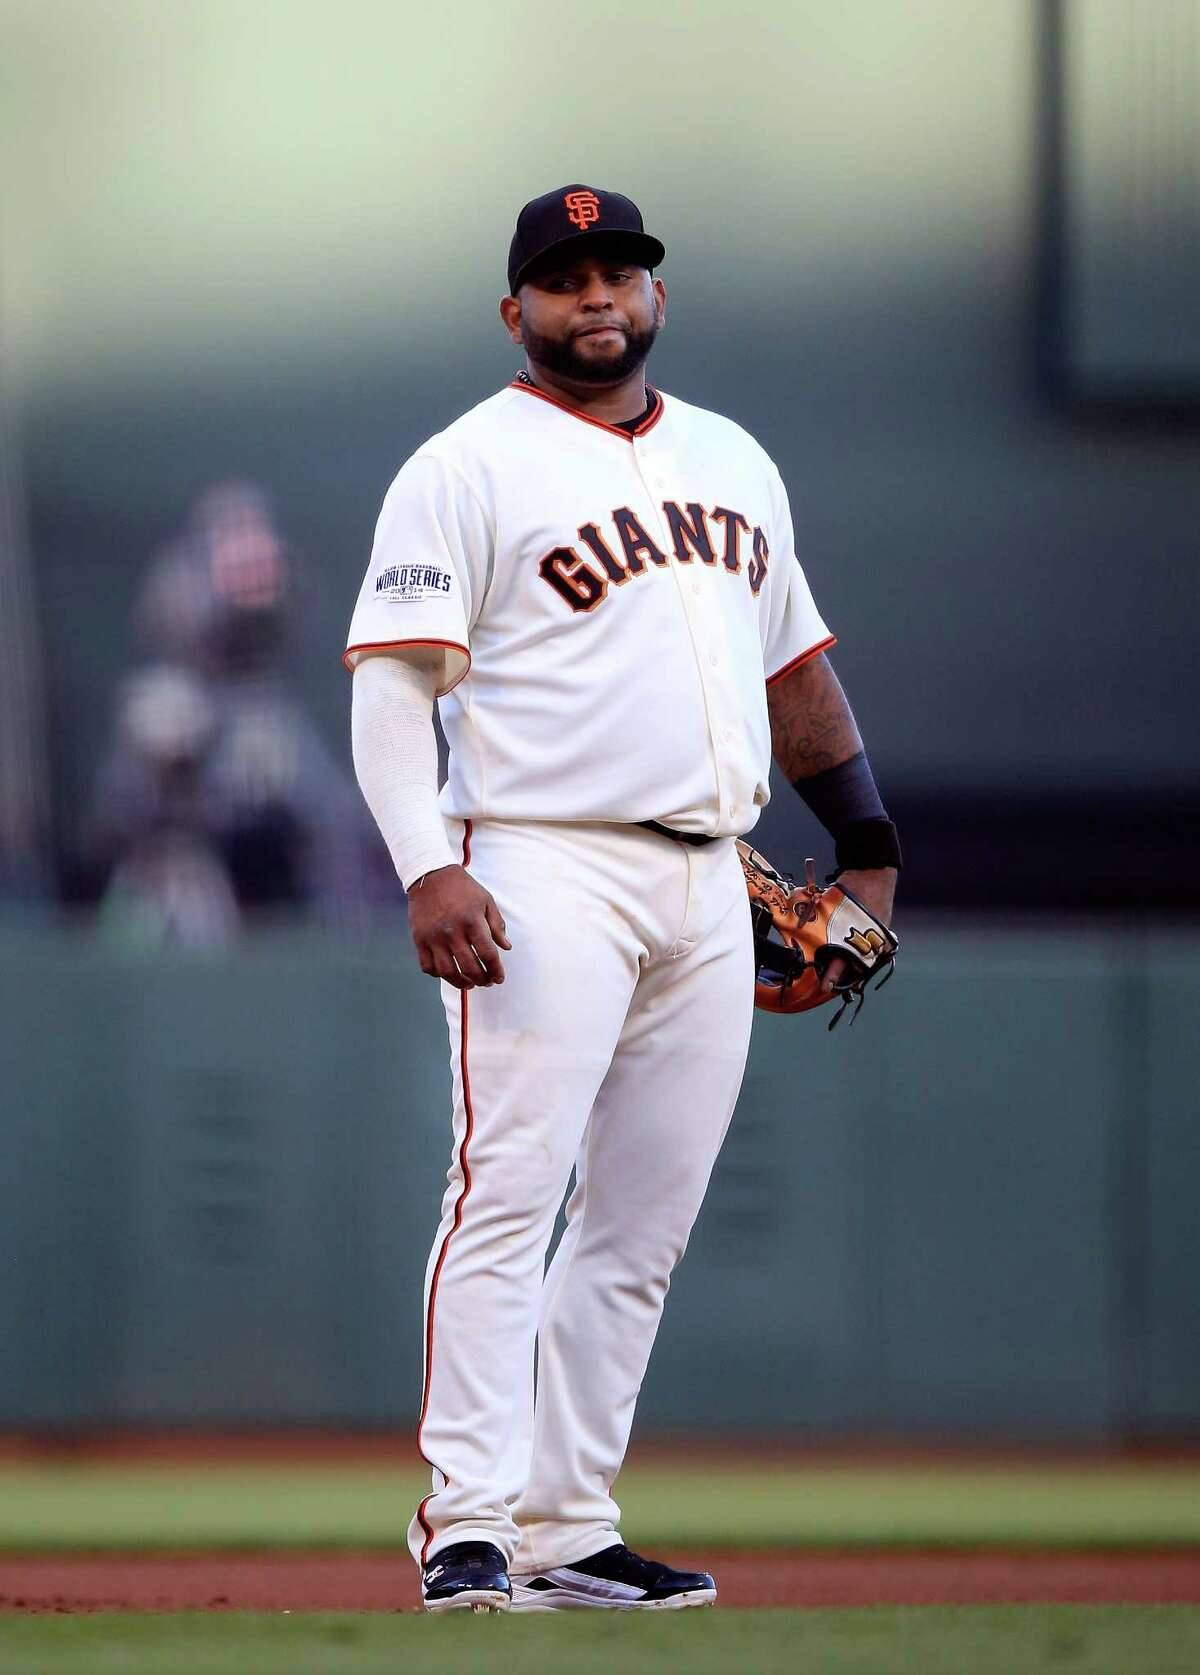 FILE - NOVEMBER 24: According to reports November 24, 2014, The Boston Red Sox will sign third baseman Pablo Sandoval. SAN FRANCISCO, CA - OCTOBER 24: Pablo Sandoval #48 of the San Francisco Giants stands in the field in the second inning while taking on Kansas City Royals during Game Three of the 2014 World Series at AT&T Park on October 24, 2014 in San Francisco, California. (Photo by Jamie Squire/Getty Images)